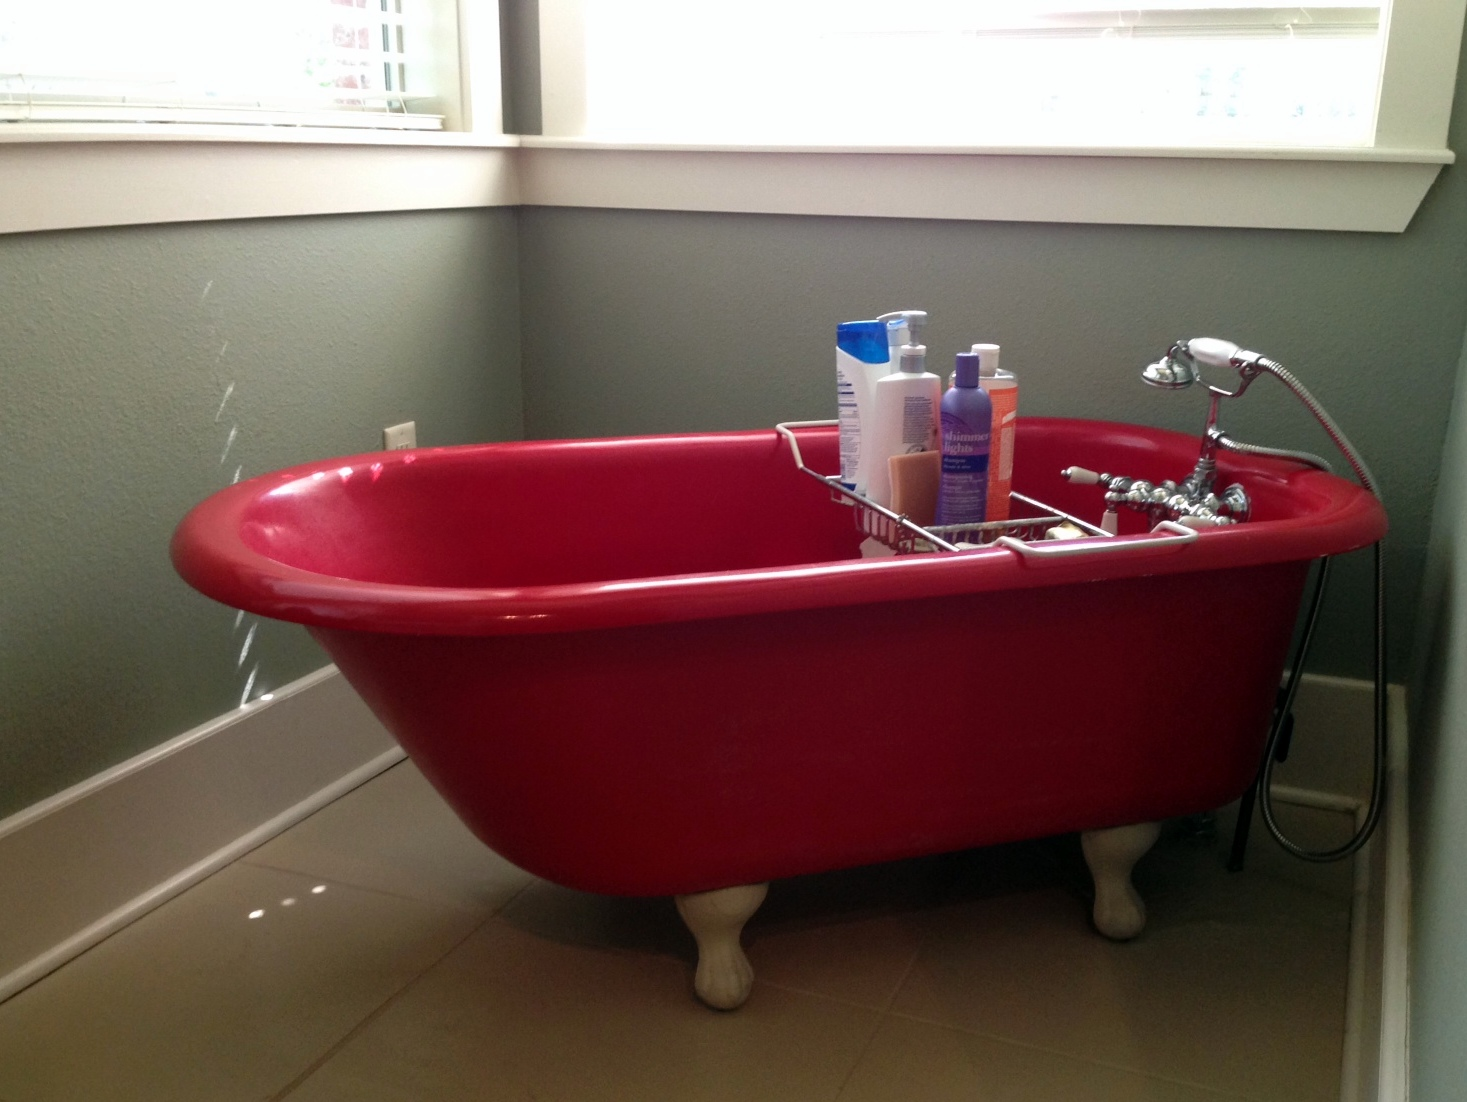 What to do with a red tub? (floor, tiles, shower) - Home Interior ...